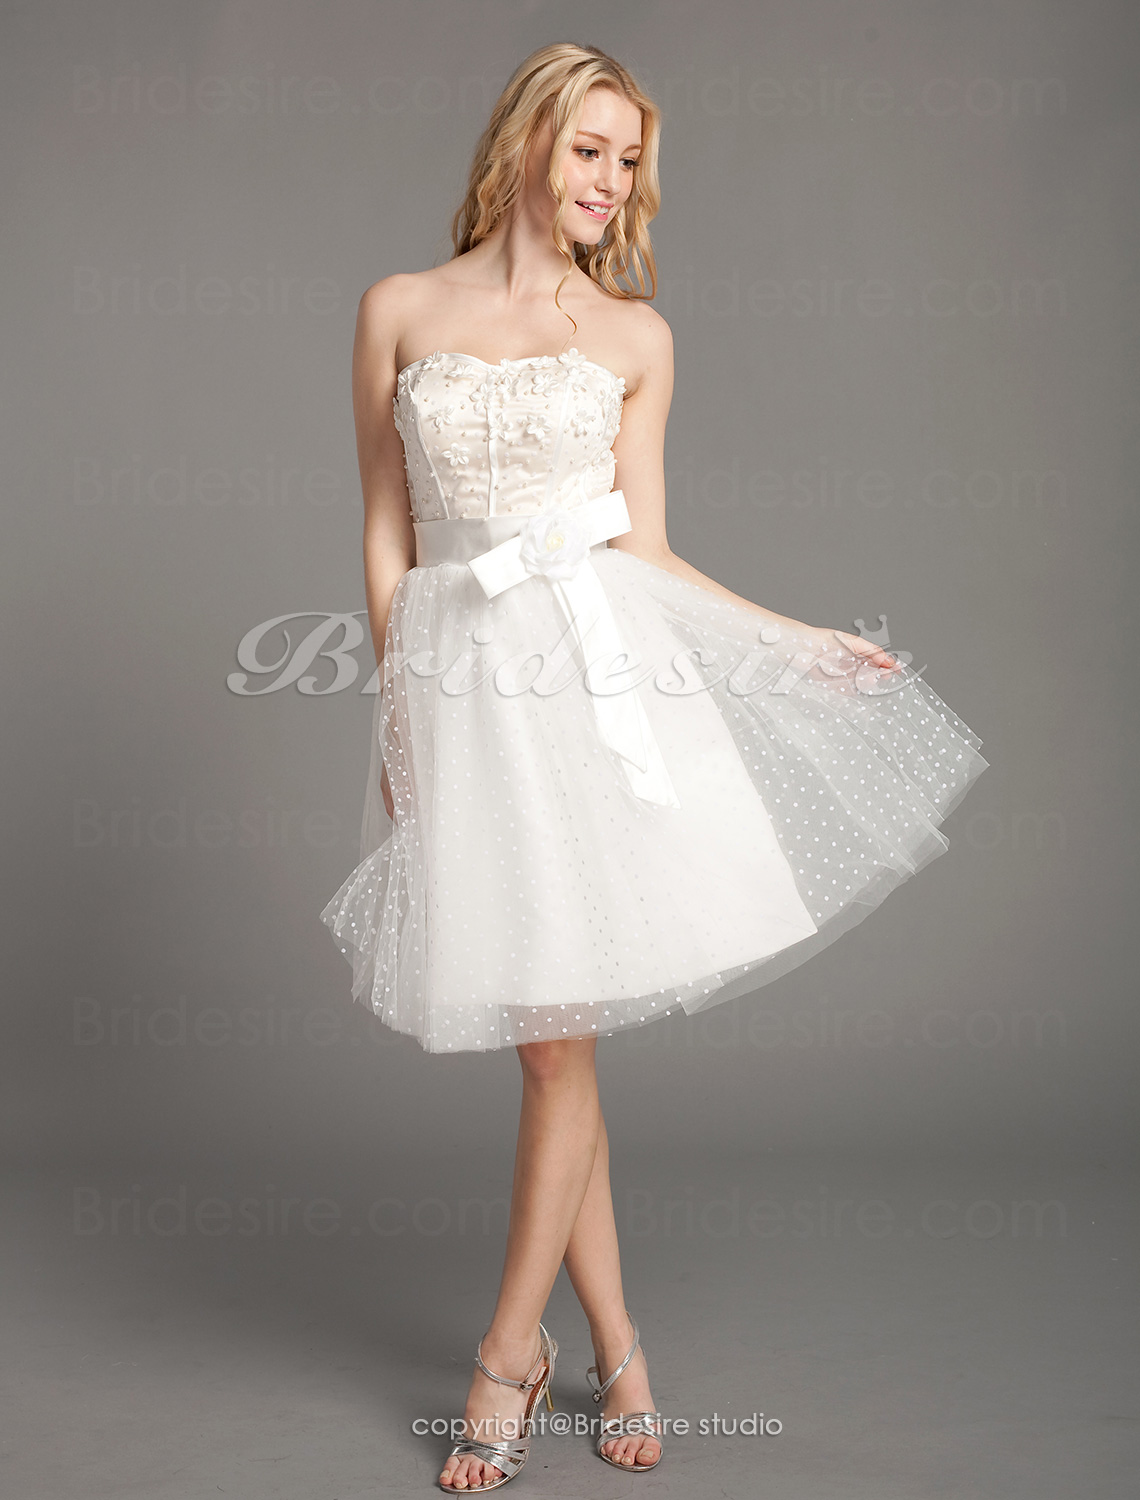 A-line Tulle Knee-length Sweetheart Wedding Dress